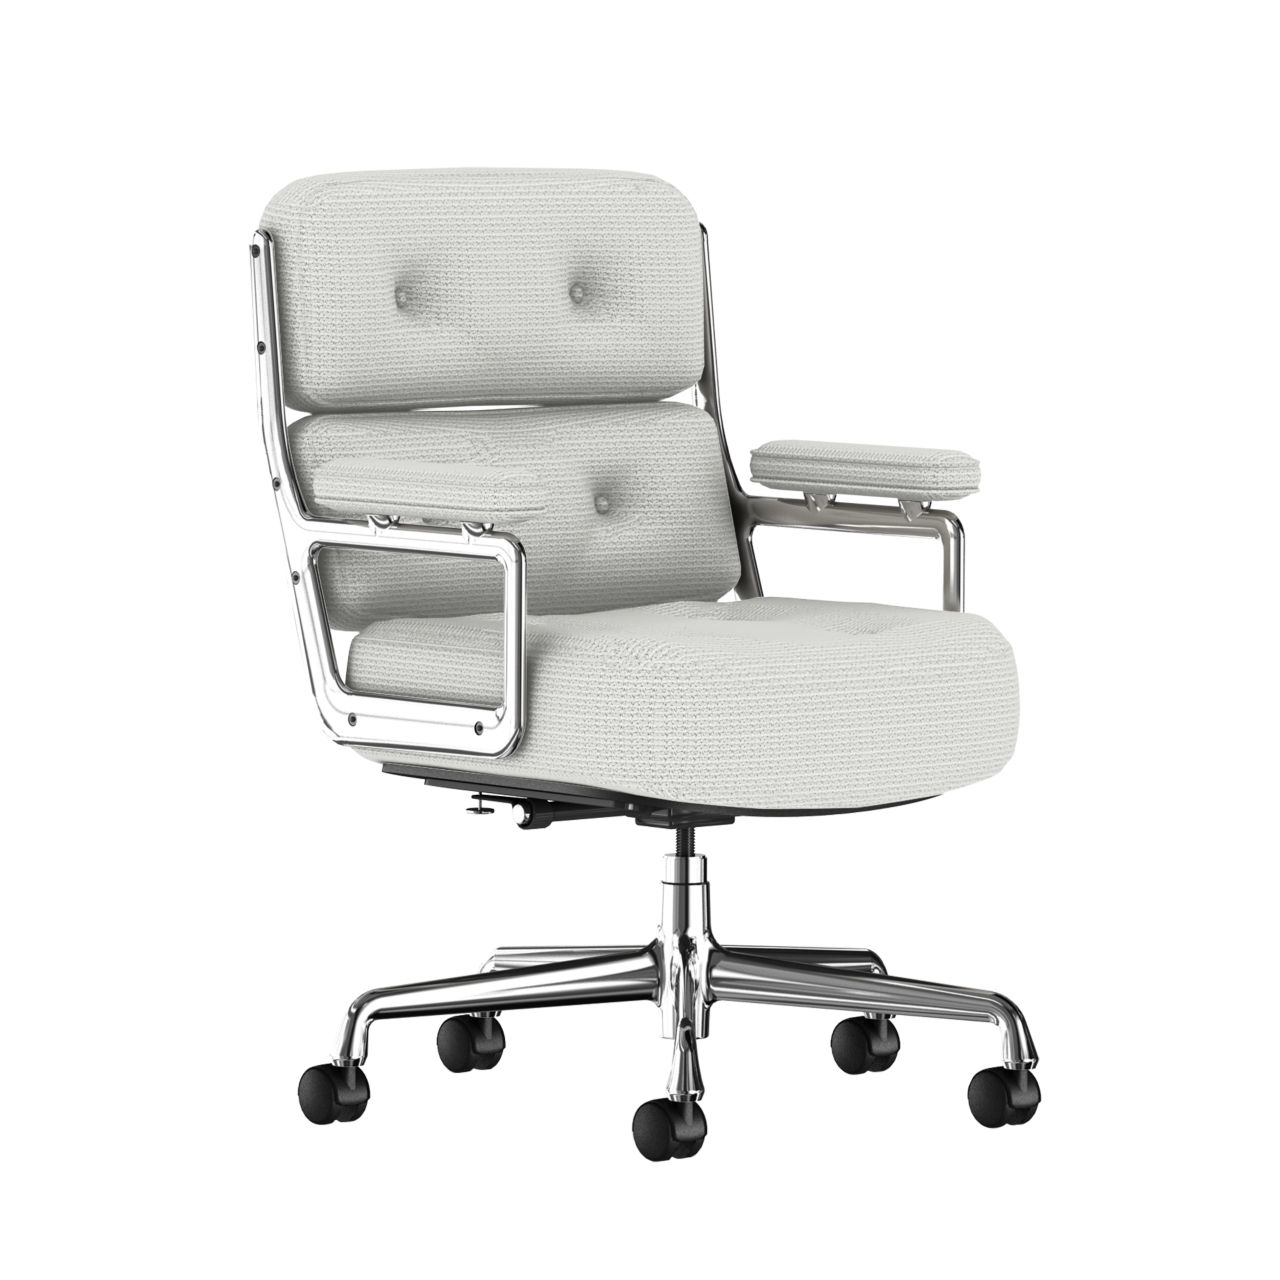 Eames Executive Work Chair Fabric in Messenger Ice by Herman Miller